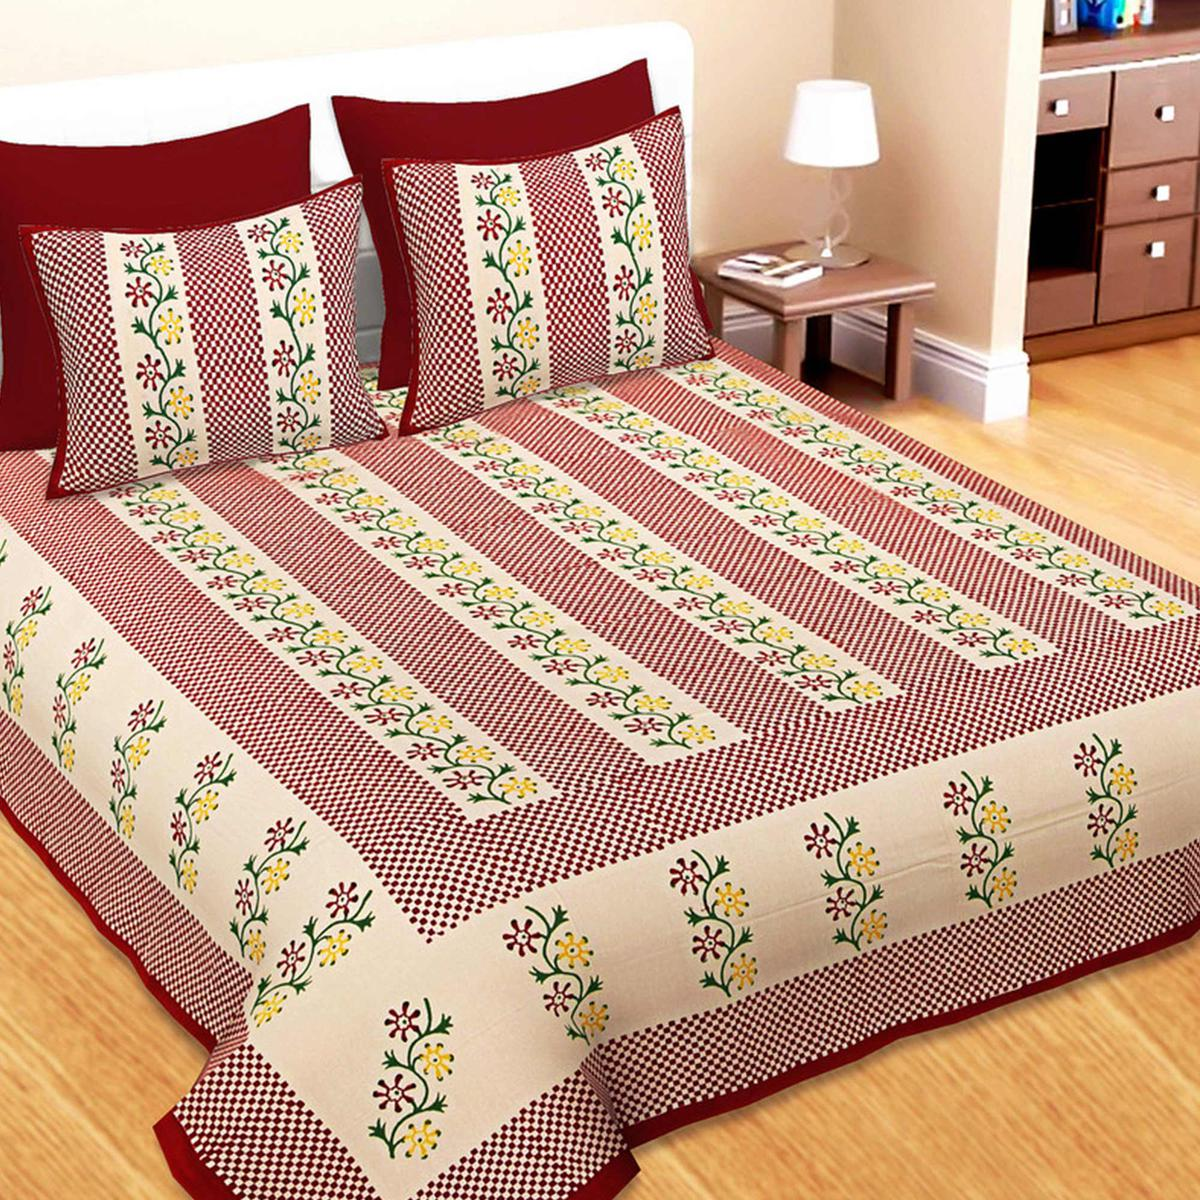 Bhagats Red Colored Hand Block Print Cotton Double Bedsheet With 2 Pillow Cover